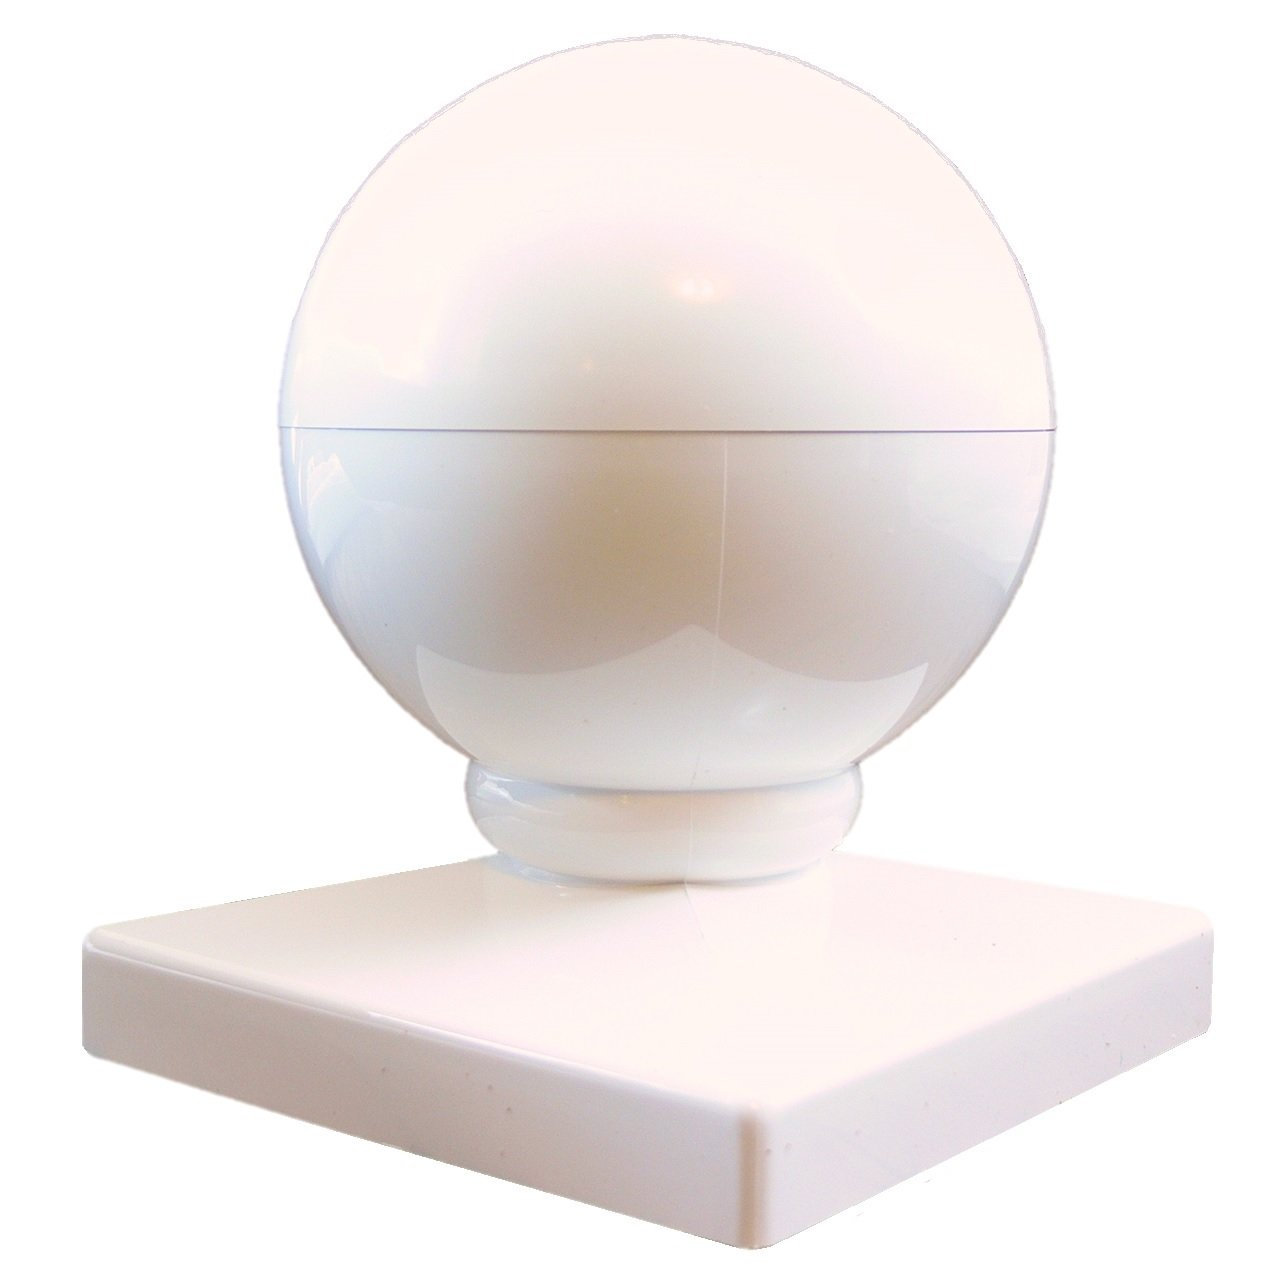 Amazon vinyl fence post cap 5 ball cap 5 inch dome style amazon vinyl fence post cap 5 ball cap 5 inch dome style white vinyl fence parts fits over a 5x5 vinyl fence post sleeve style post vinyl baanklon Image collections